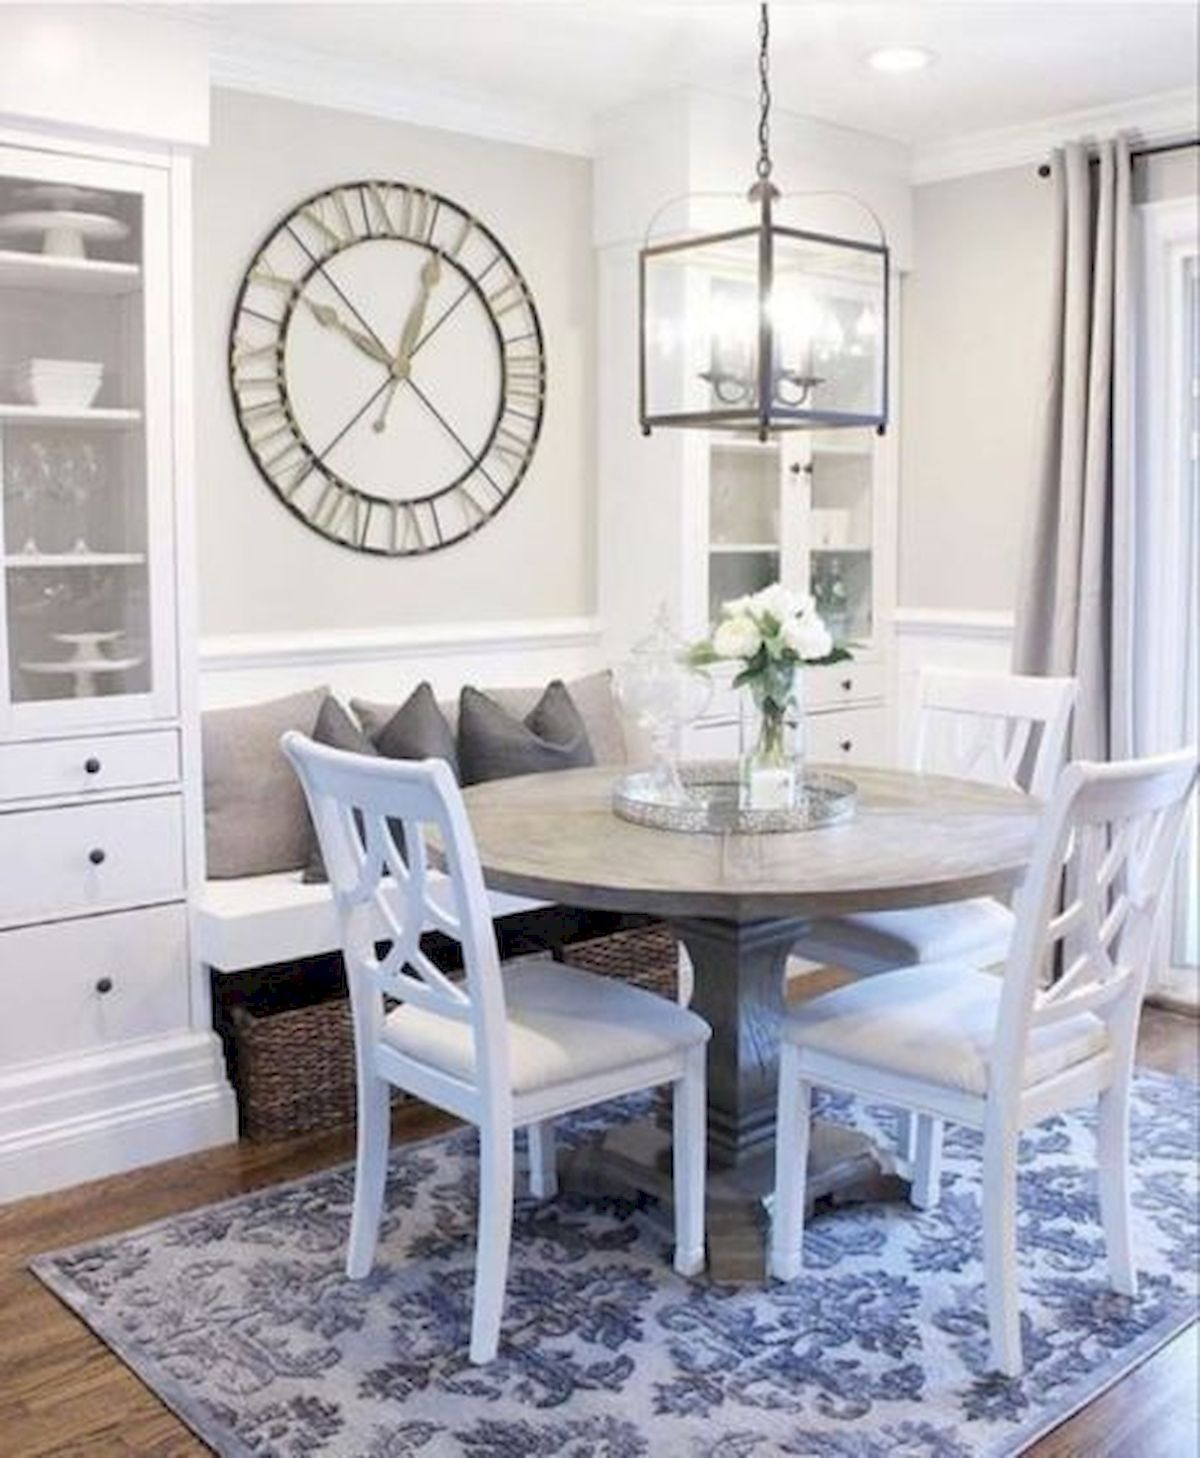 52 Beautiful Small Dining Room Ideas On A Budget Shairoom Com Dining Room Small Dining Room Budget Farmhouse Dining Room